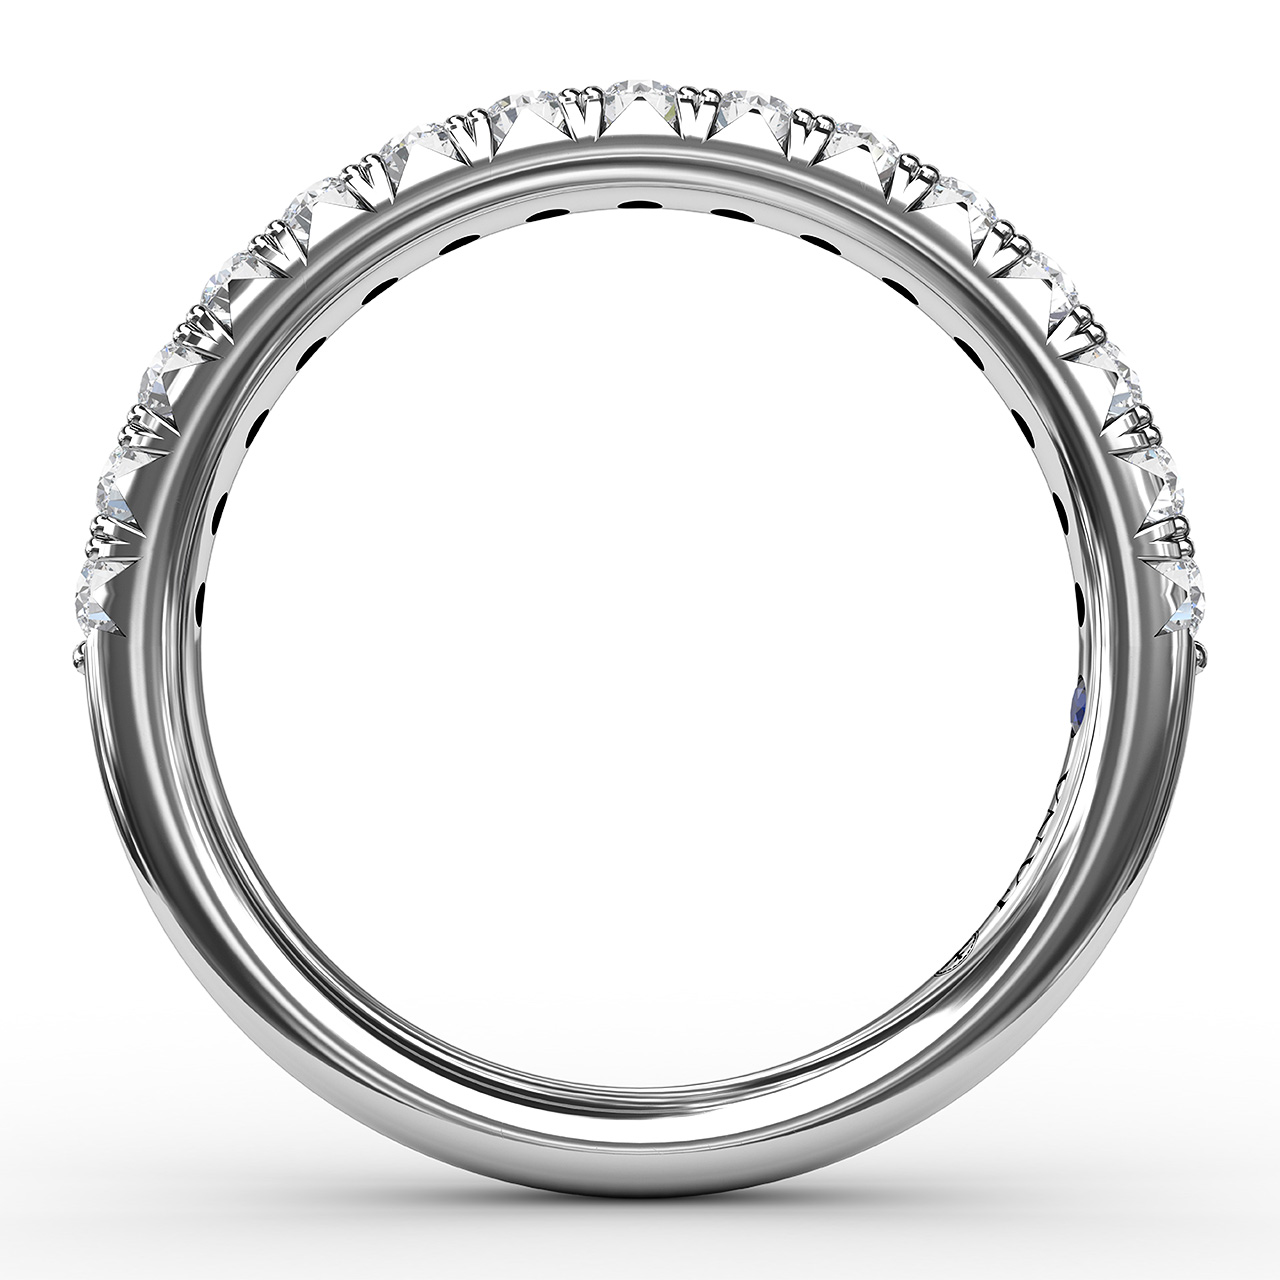 Anniversary Bands - 1/2ct French Pave Set Anniversary Band - image #2